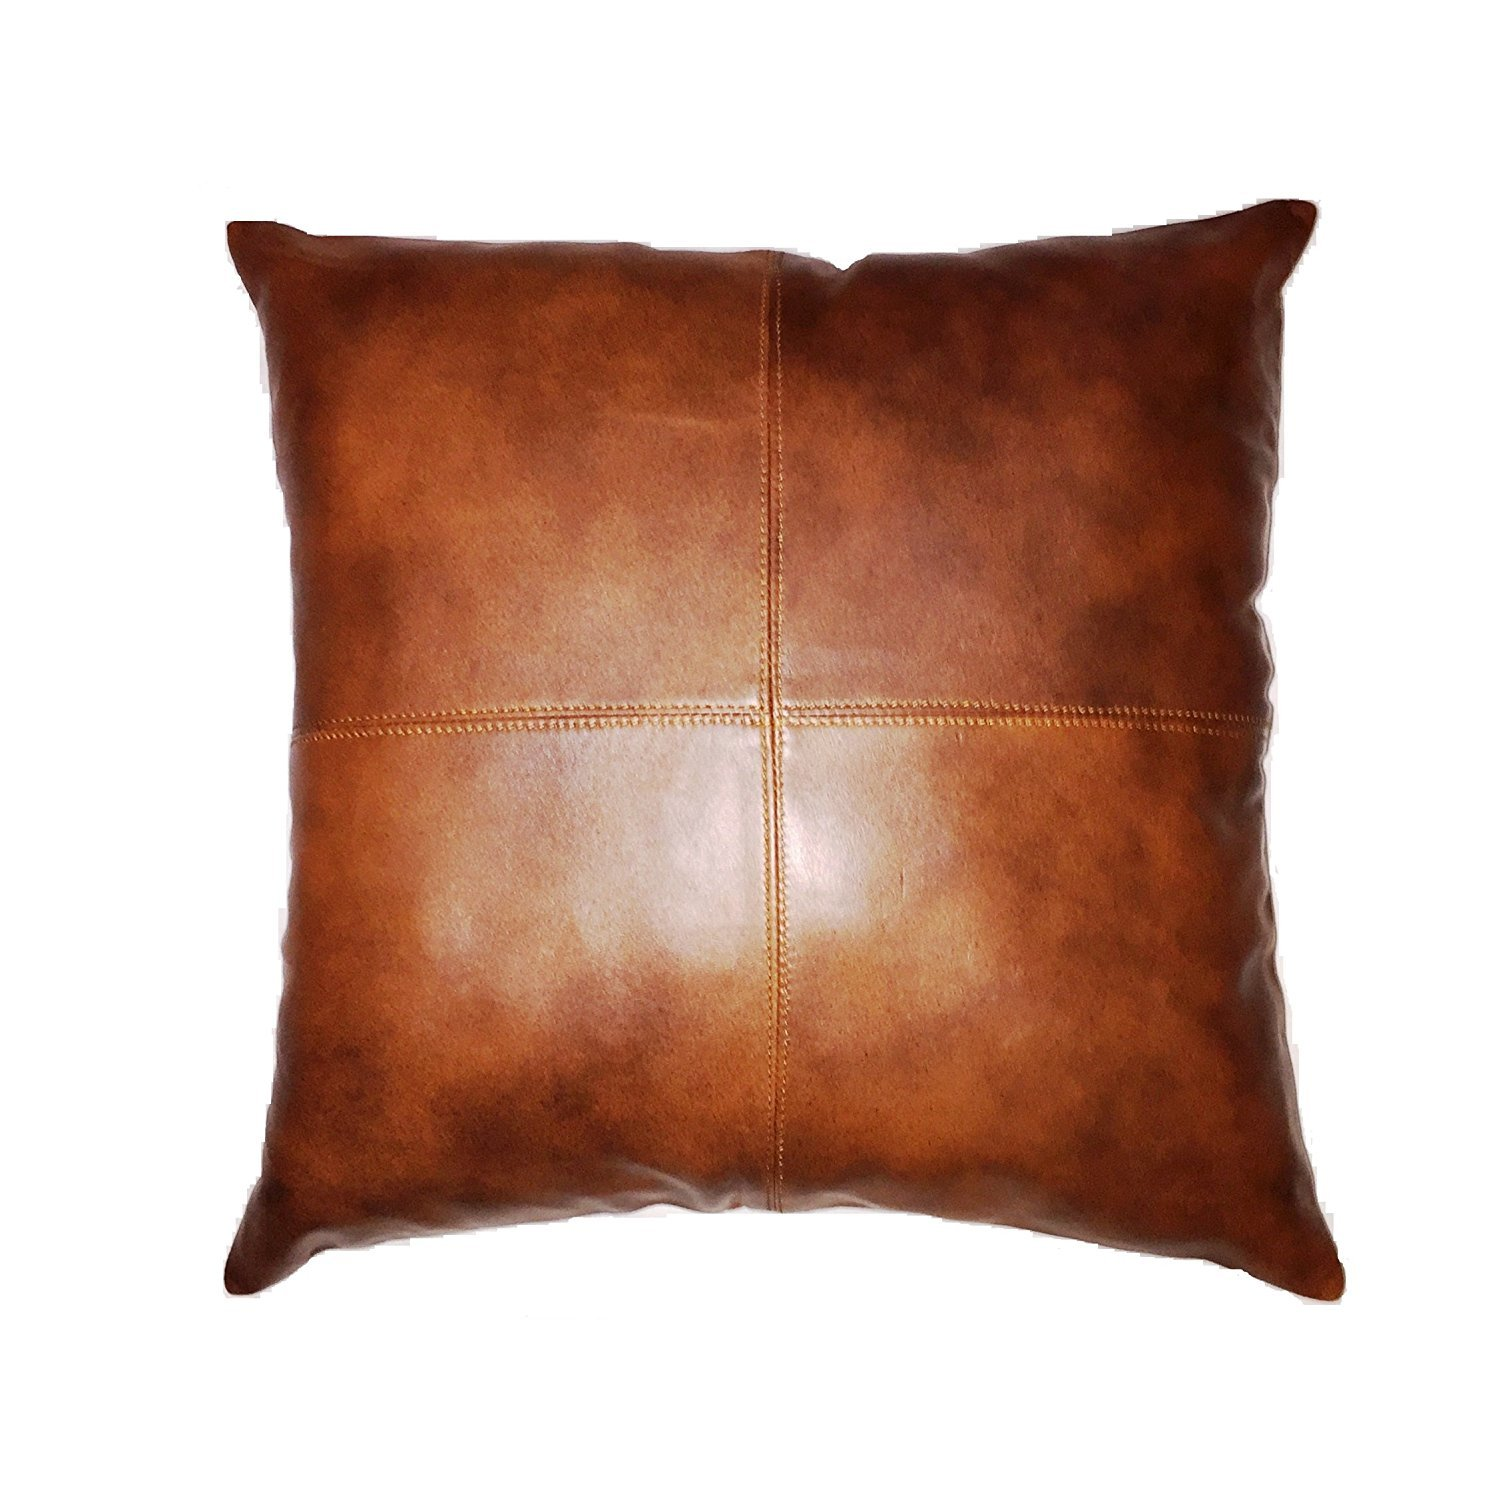 Leather Planet Lambskin Leather Pillow Cushion Cover All sizes-Pack of 2 22''x22'' (p)